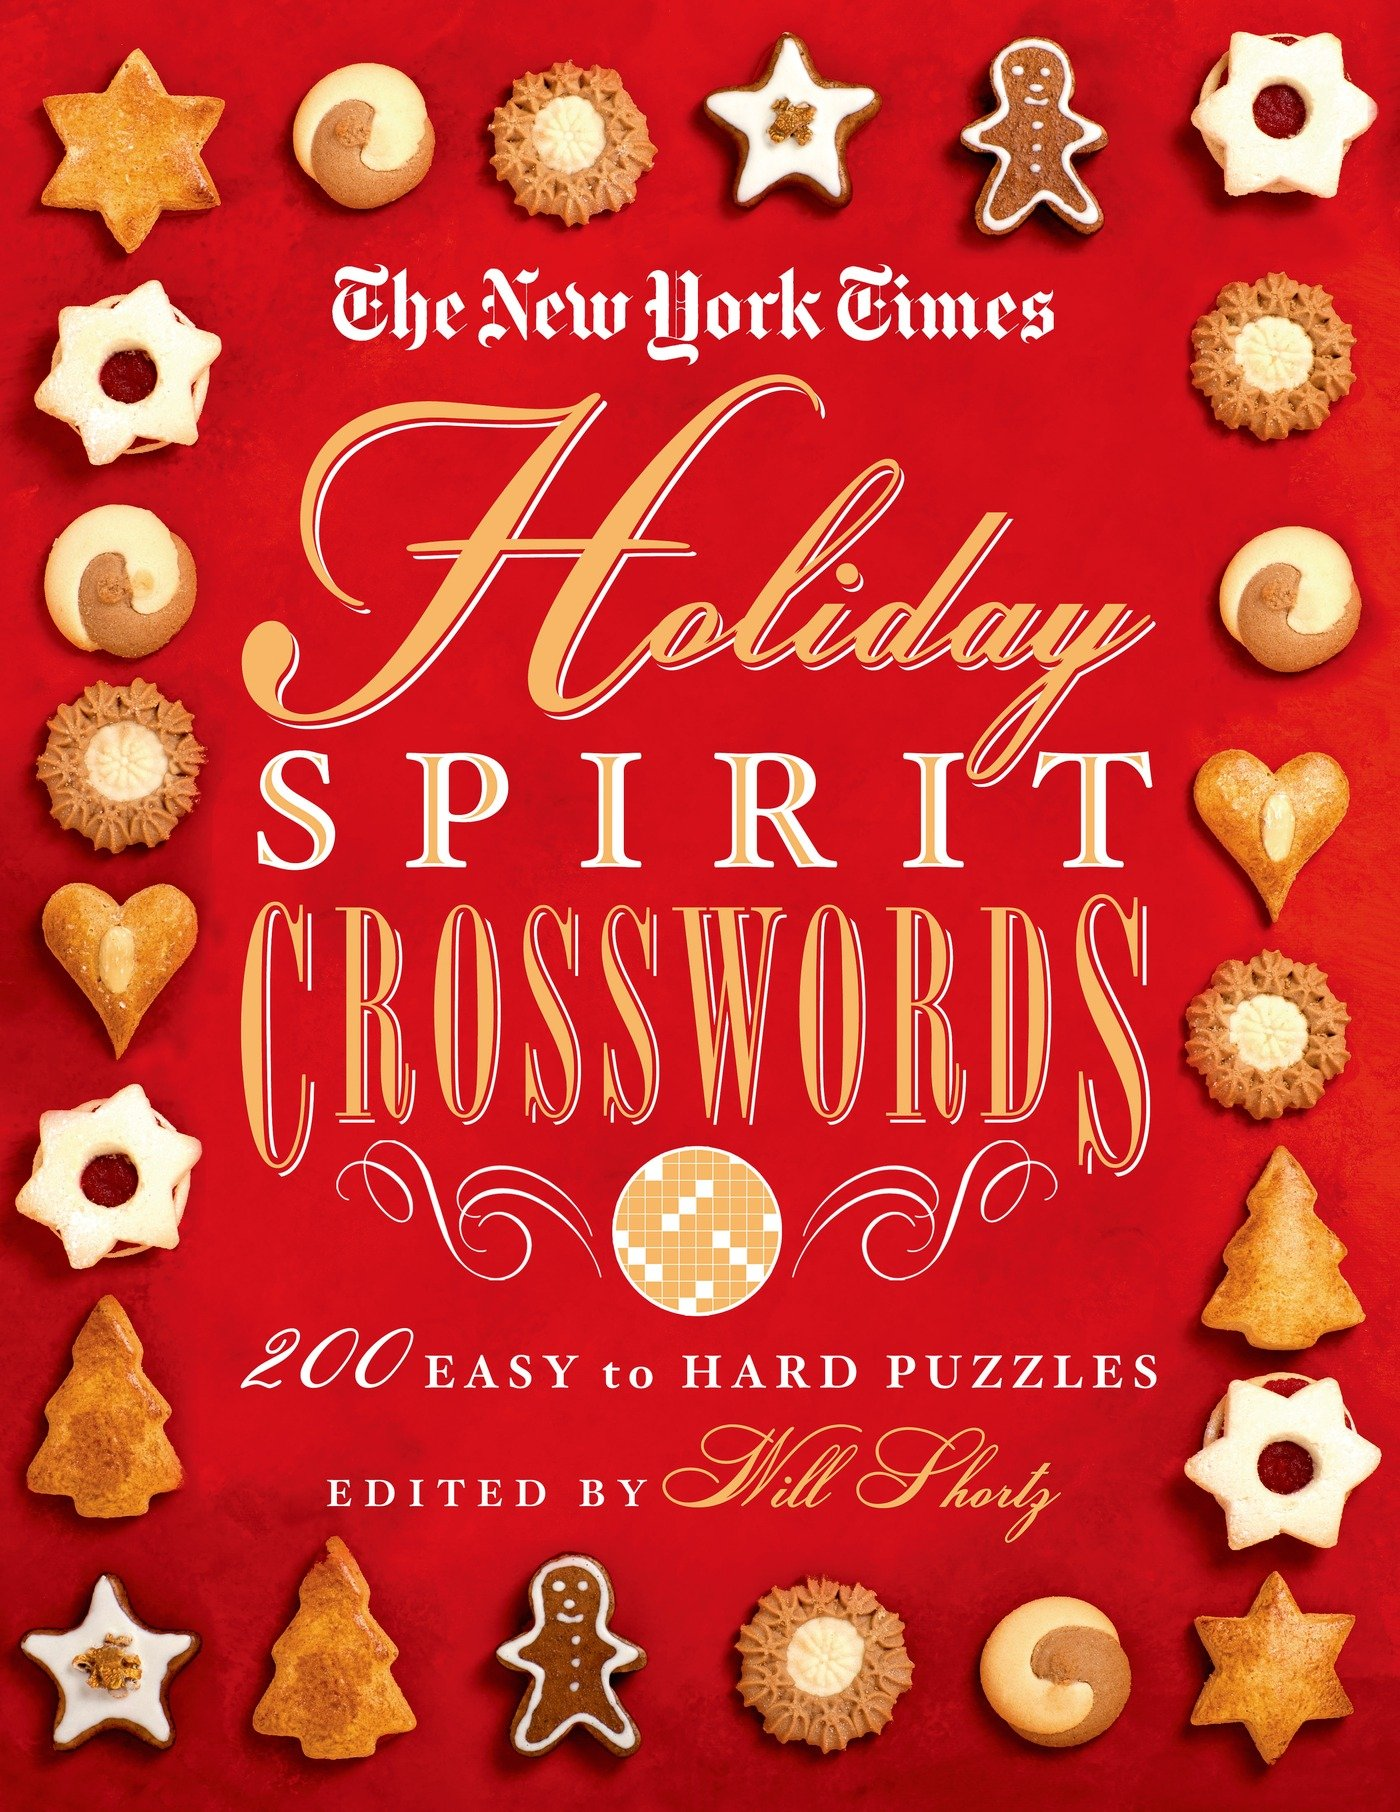 The New York Times Holiday Spirit Crosswords: 200 Easy to Hard Puzzles PDF